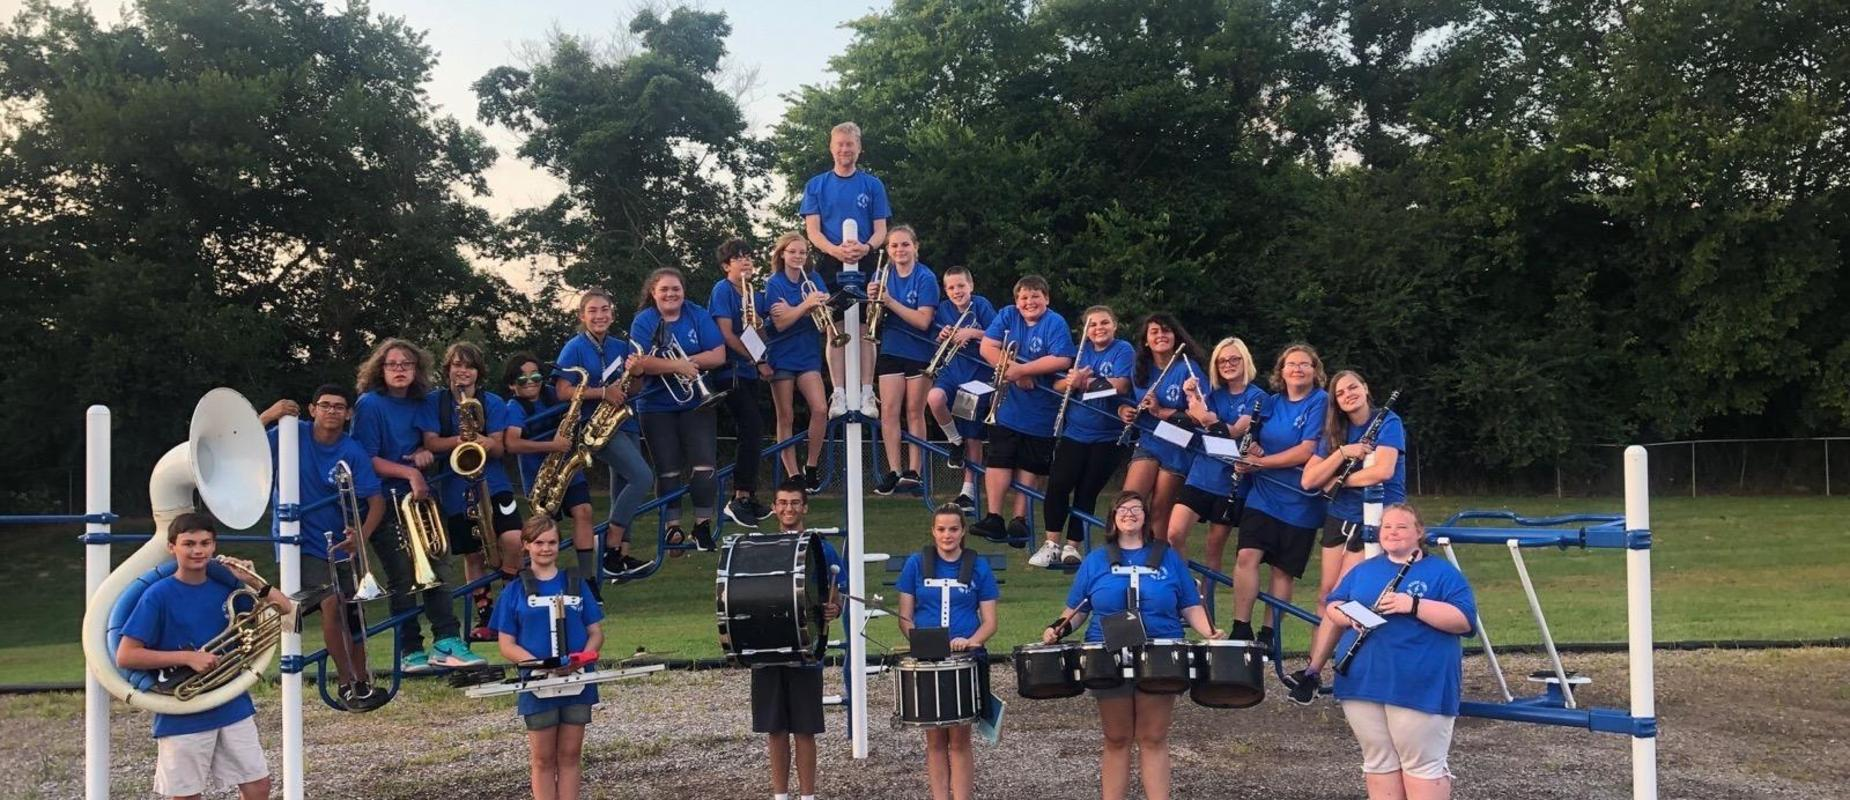 JCMS band picture